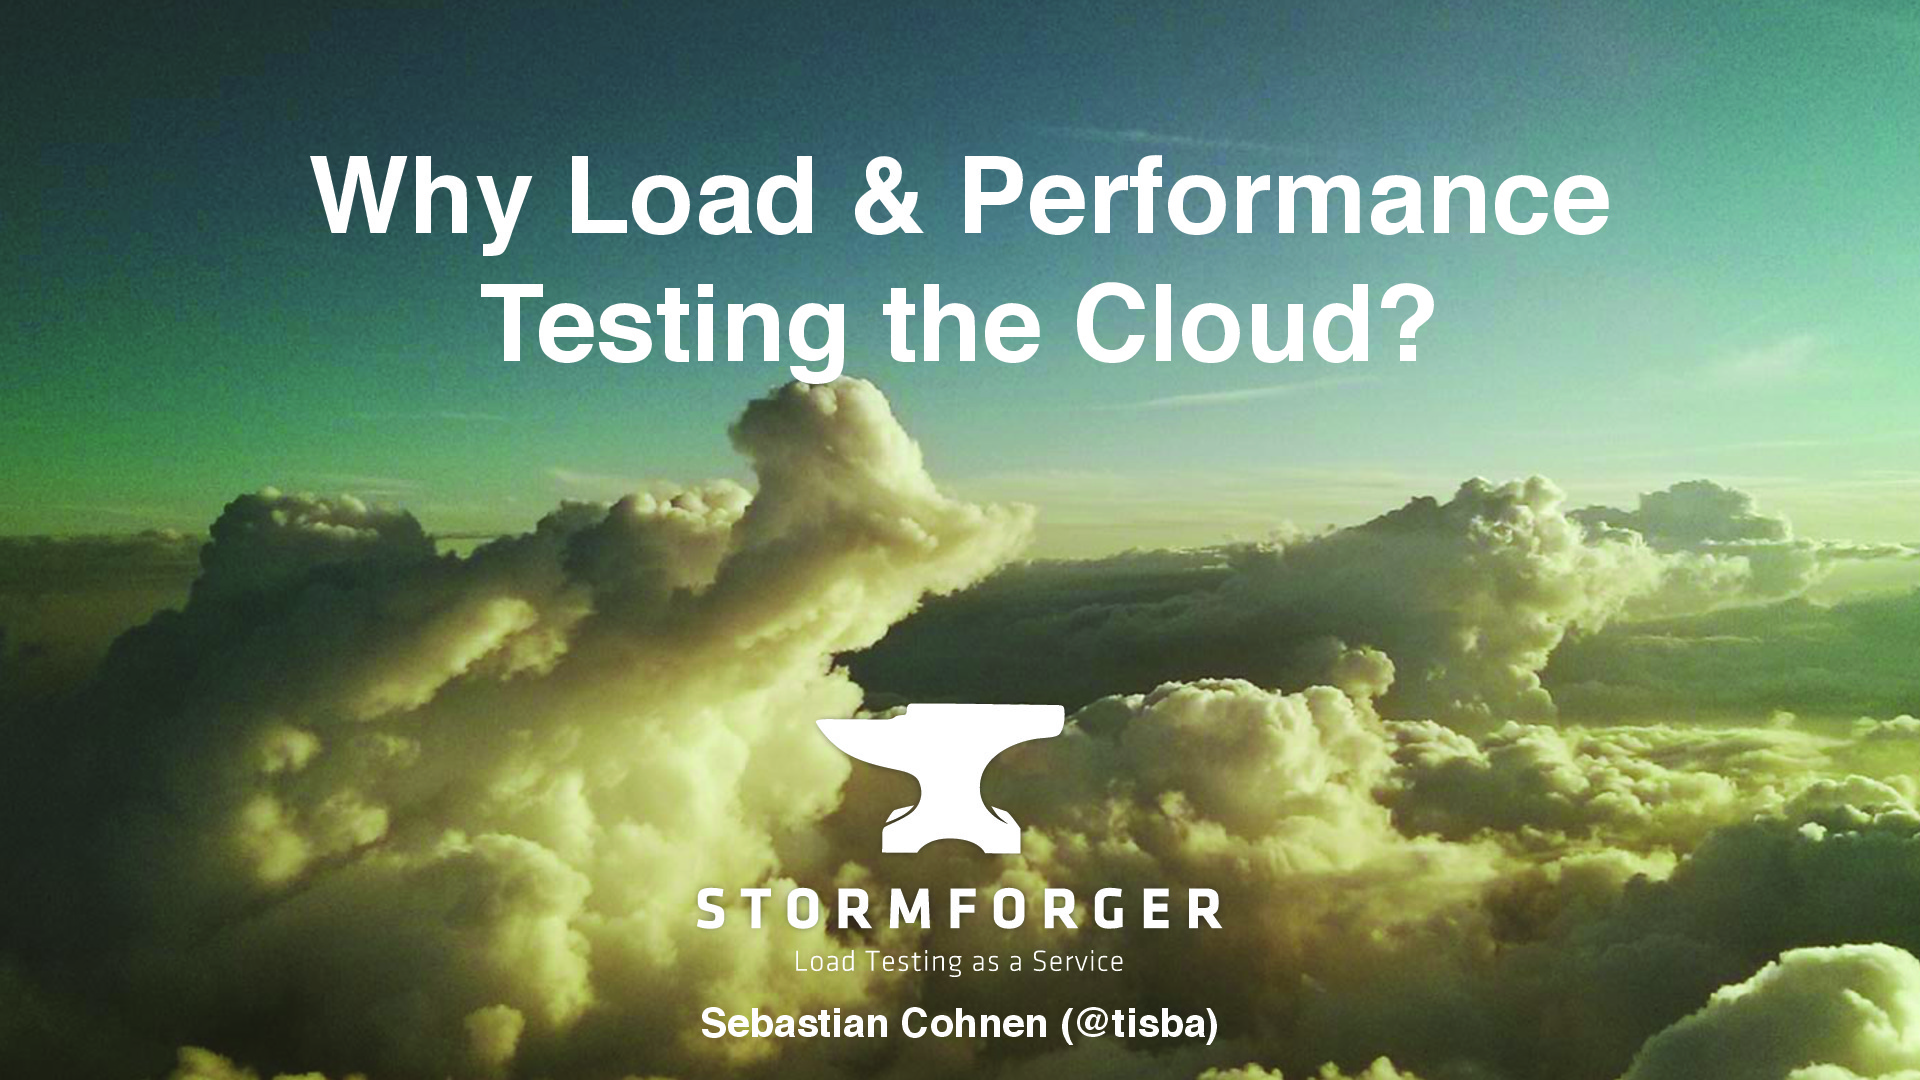 Why Load & Performance Testing the Cloud?